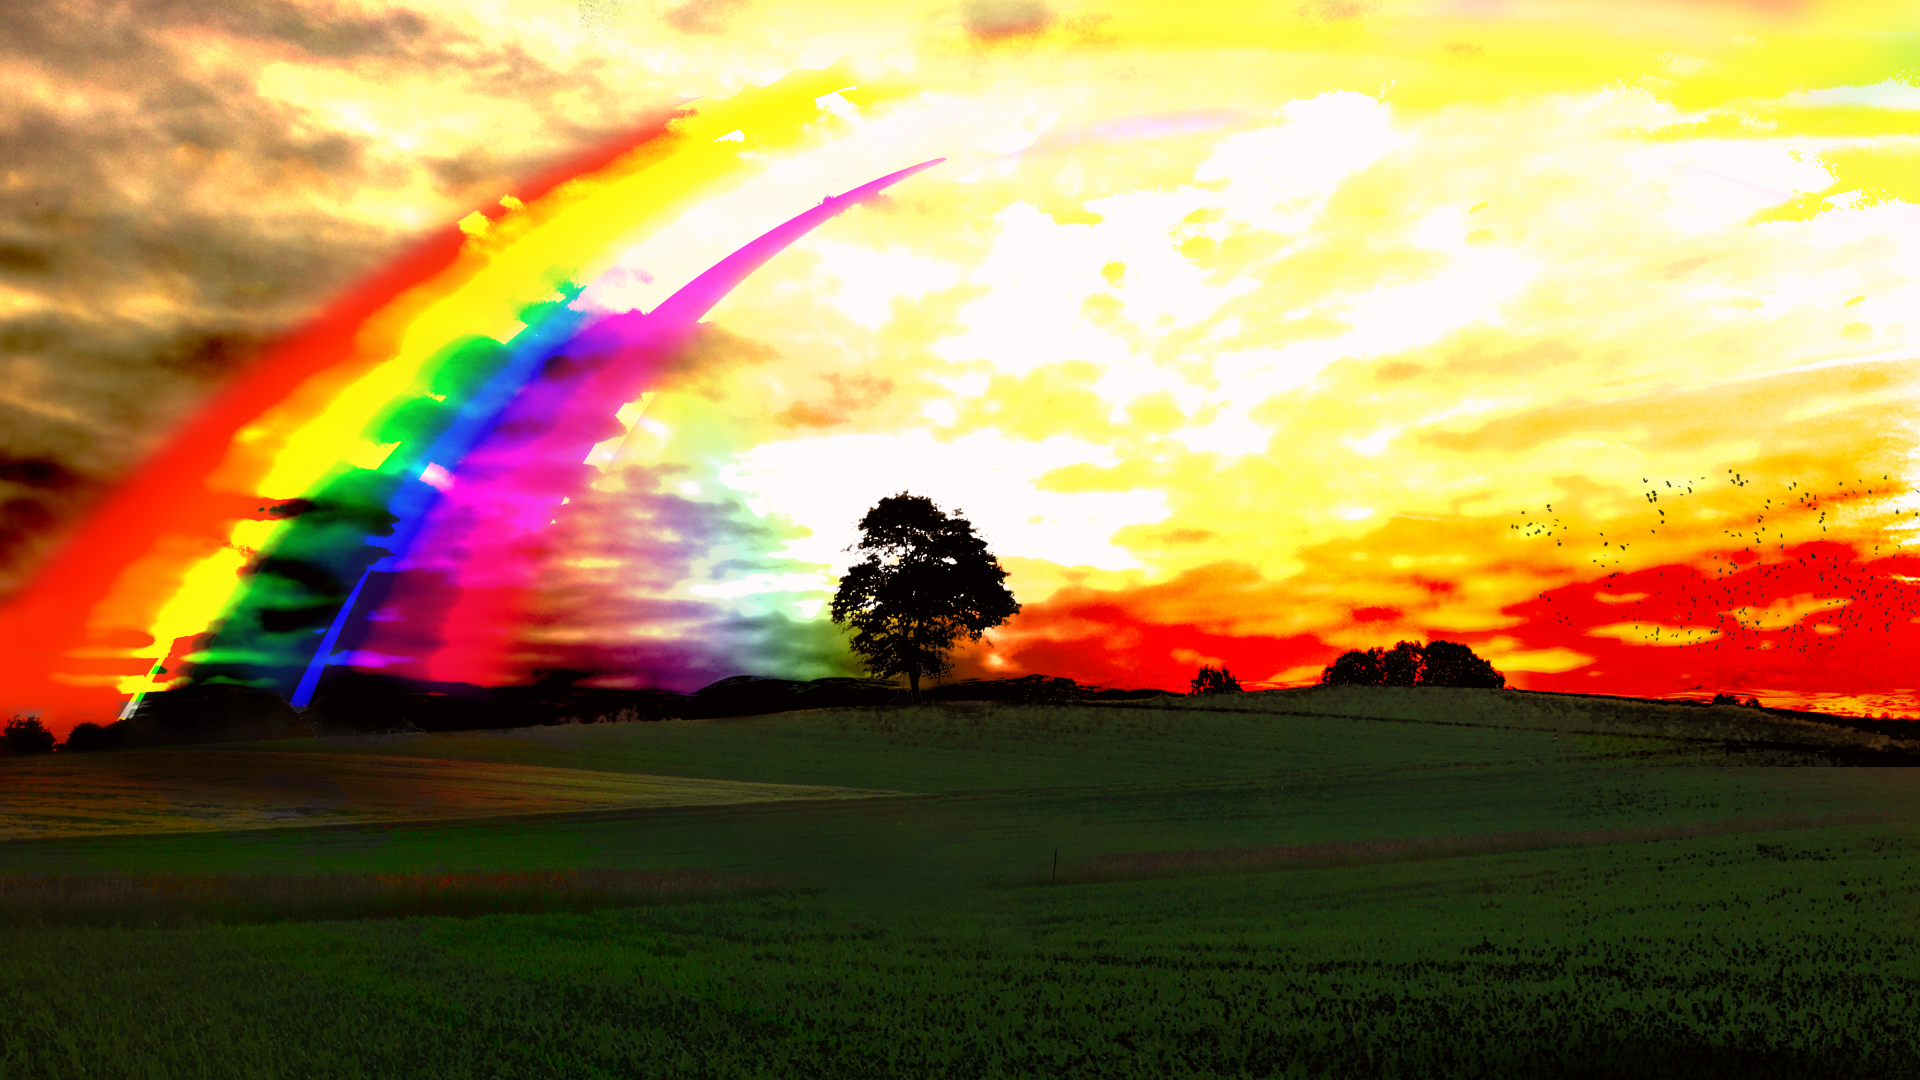 rainbow-bridge-surreal.png